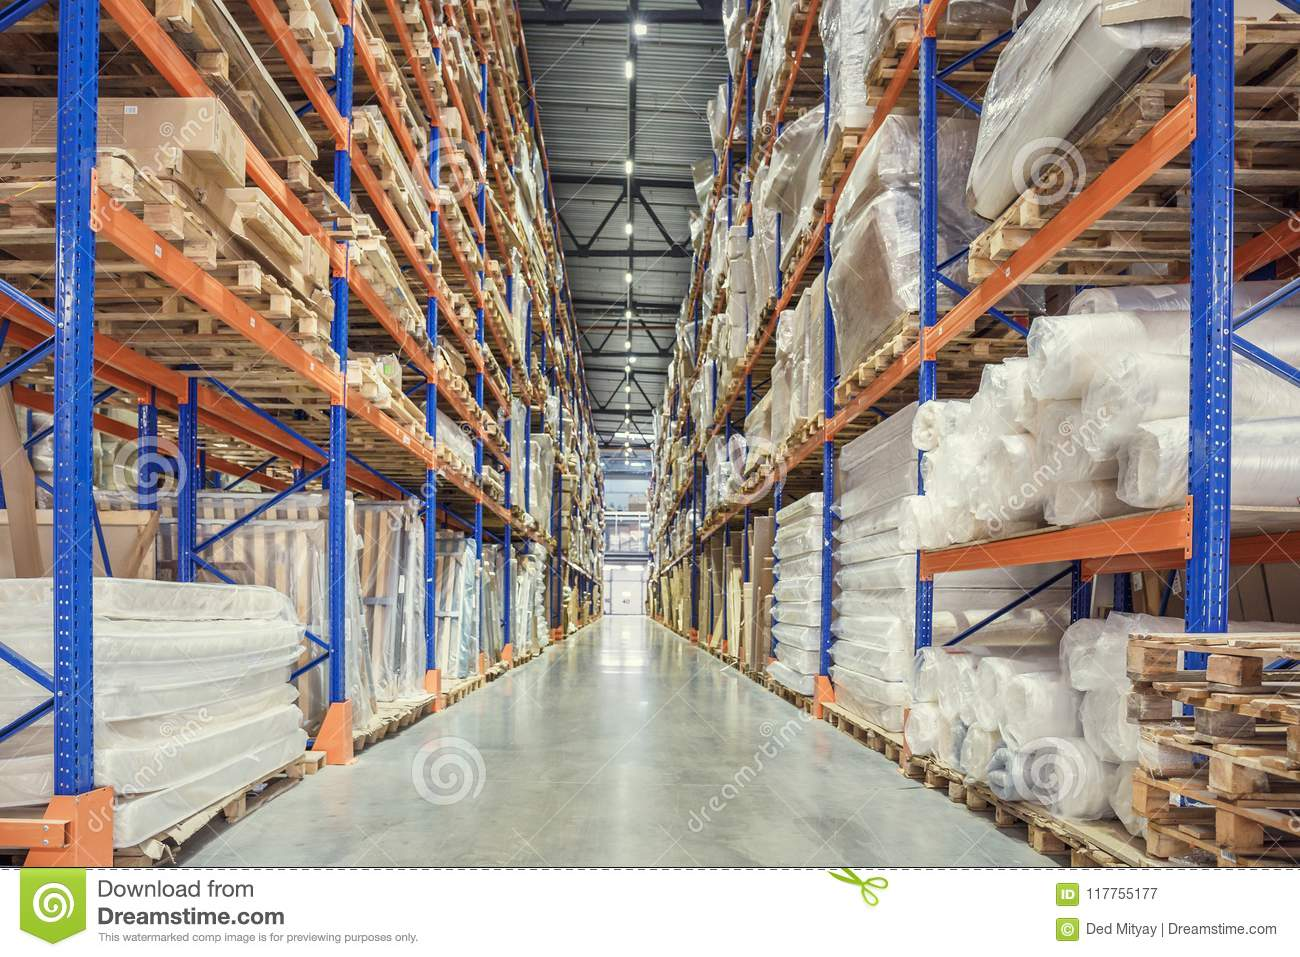 Large Logistics hangar warehouse with lots shelves or racks with pallets of goods. Industrial shipping and cargo delivery